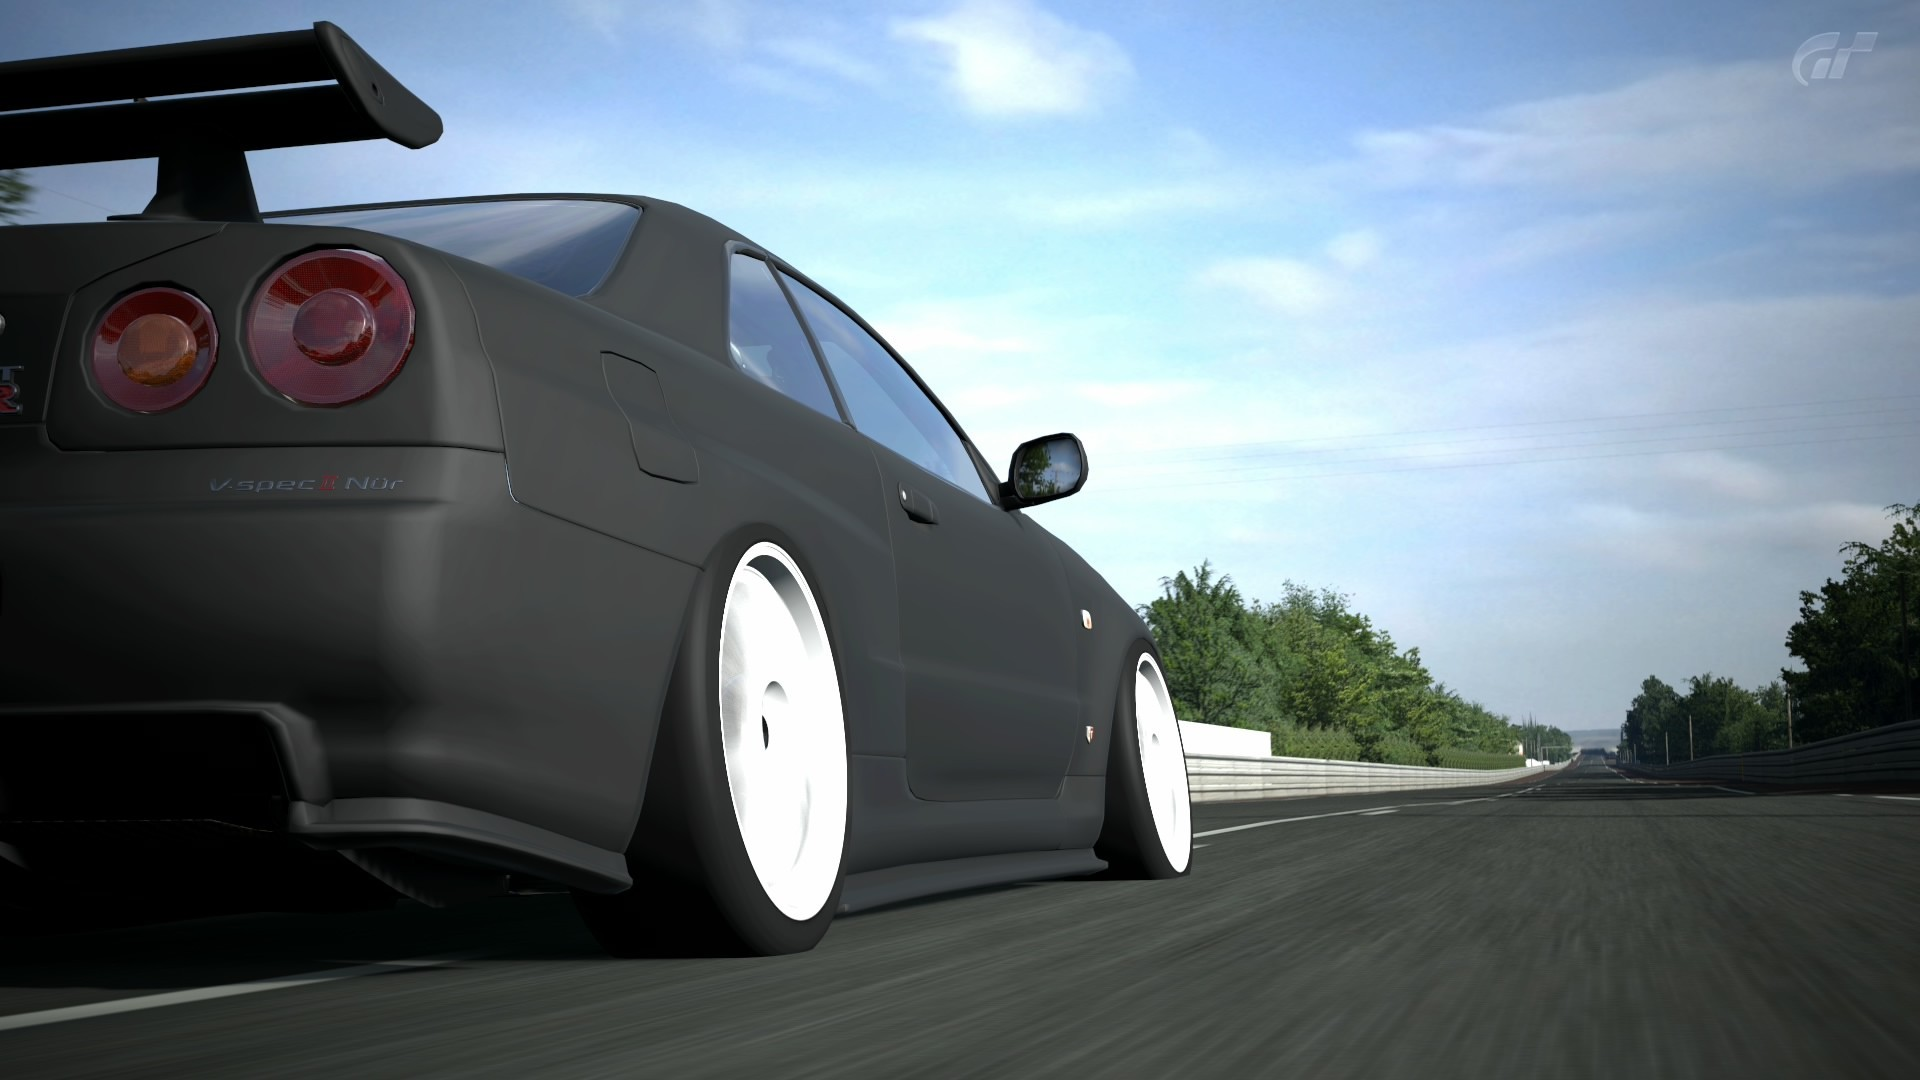 nissan skyline r34 wallpapers (75+ background pictures)